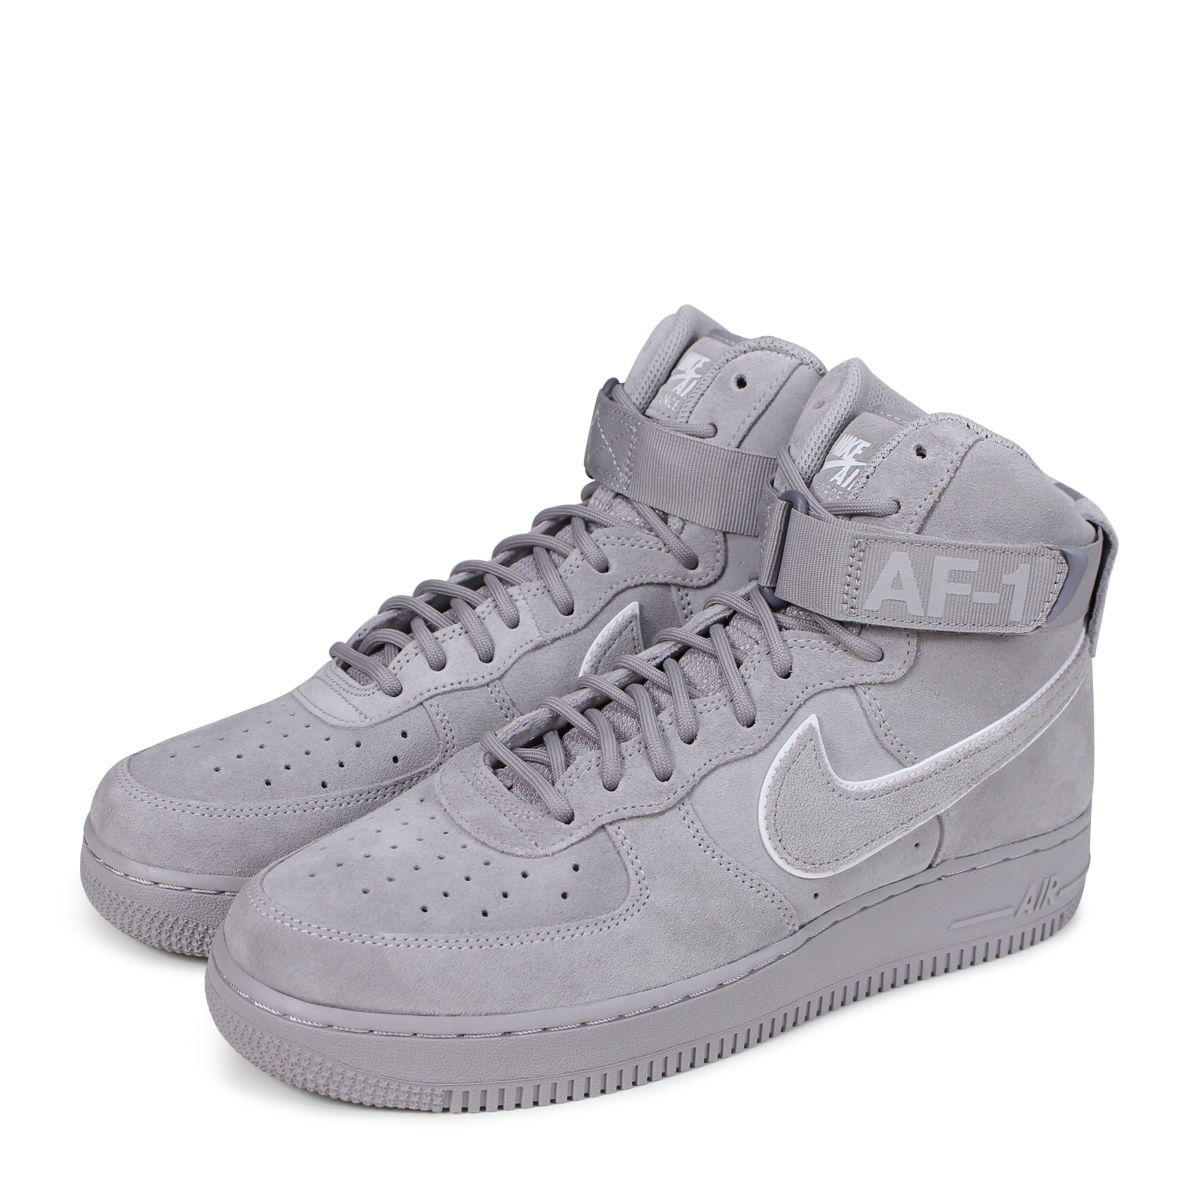 b42c3aea535 NIKE AIR FORCE 1 07 LV8 HIGH Nike air force 1 sneakers men AA1118-003 gray  [load planned Shinnyu load in reservation product 6/15 containing] [186]